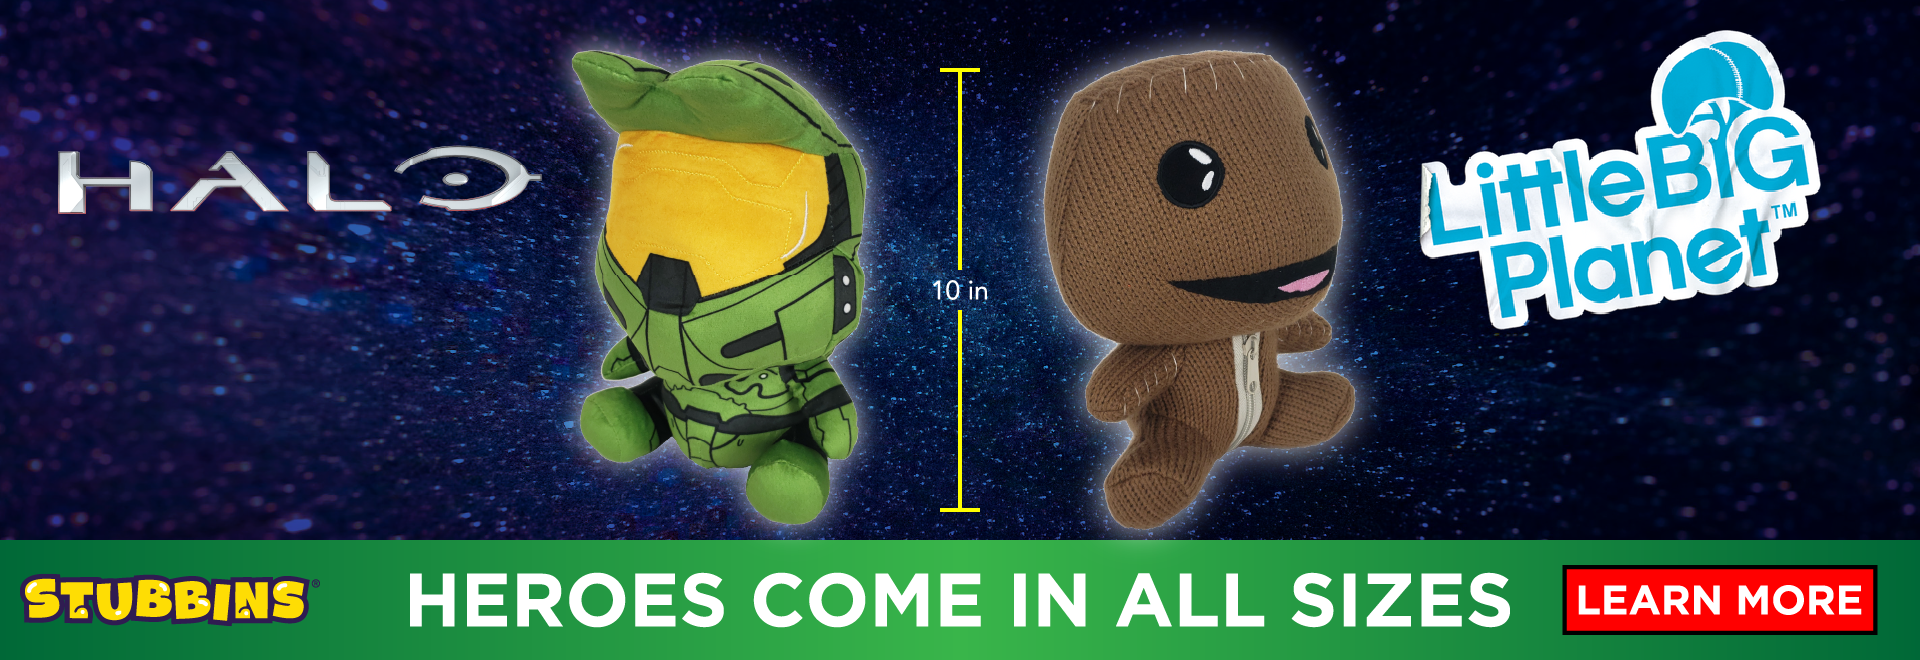 Stubbins - Heroes Come in All Sizes